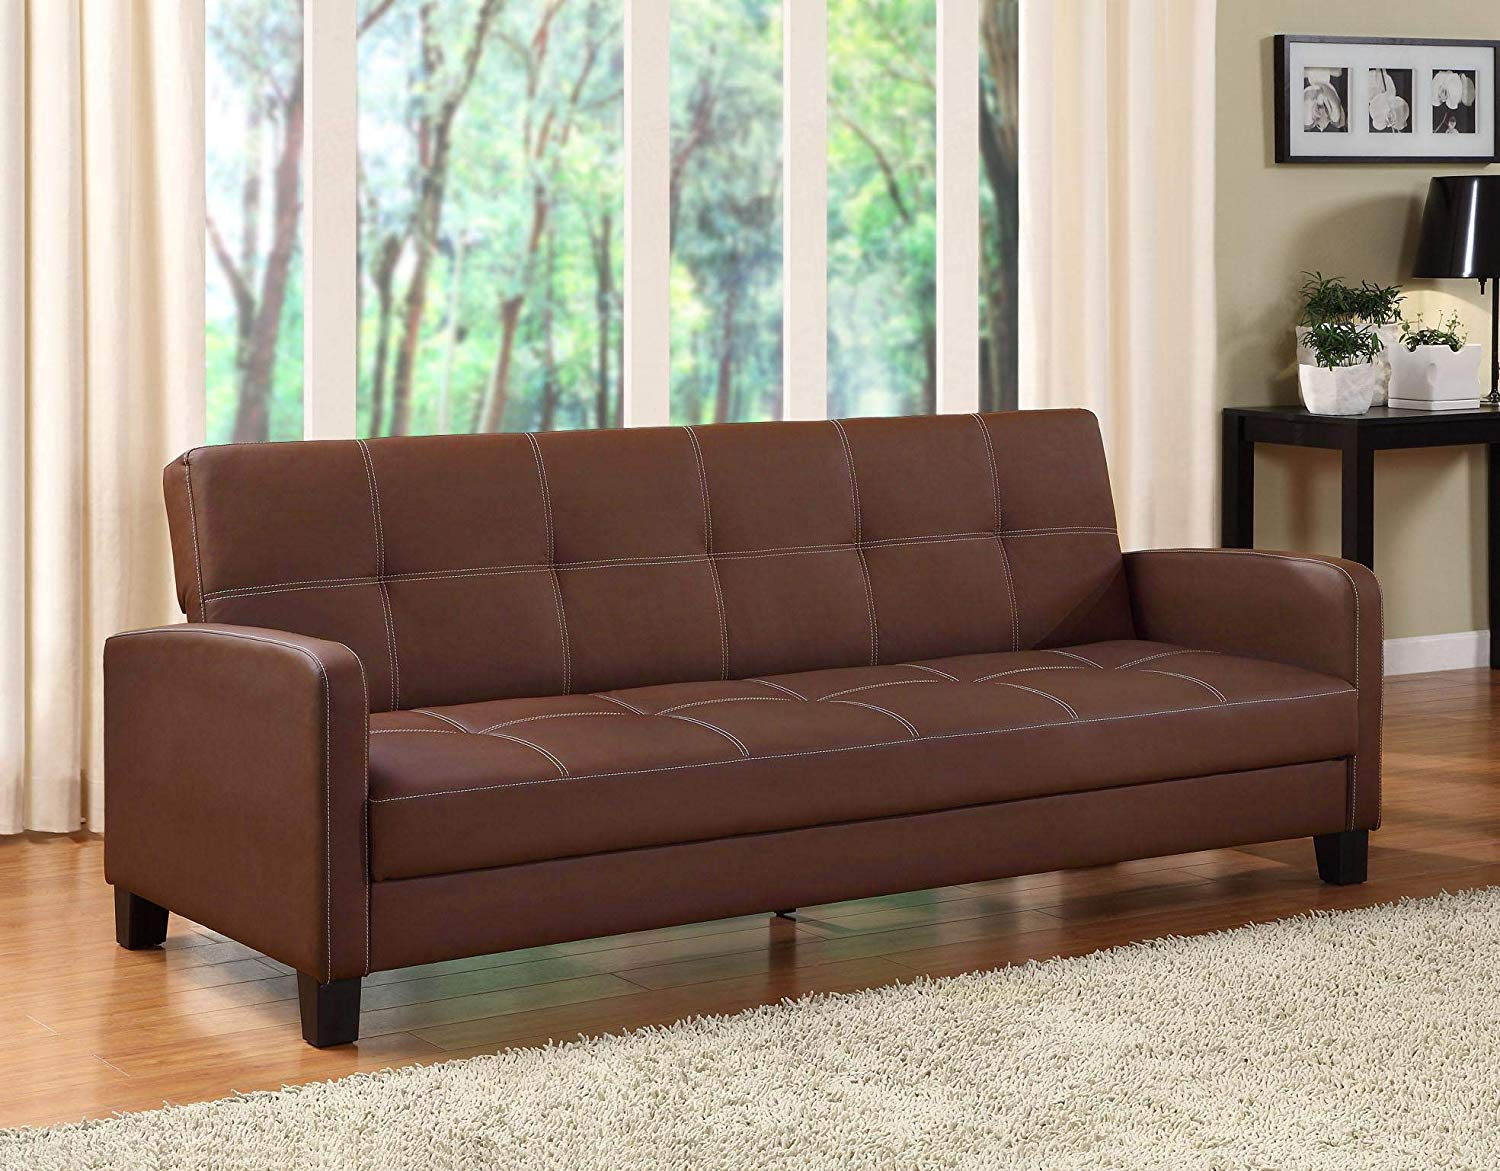 DHP Best Sleeper Sofa Review by www.snoremagazine.com